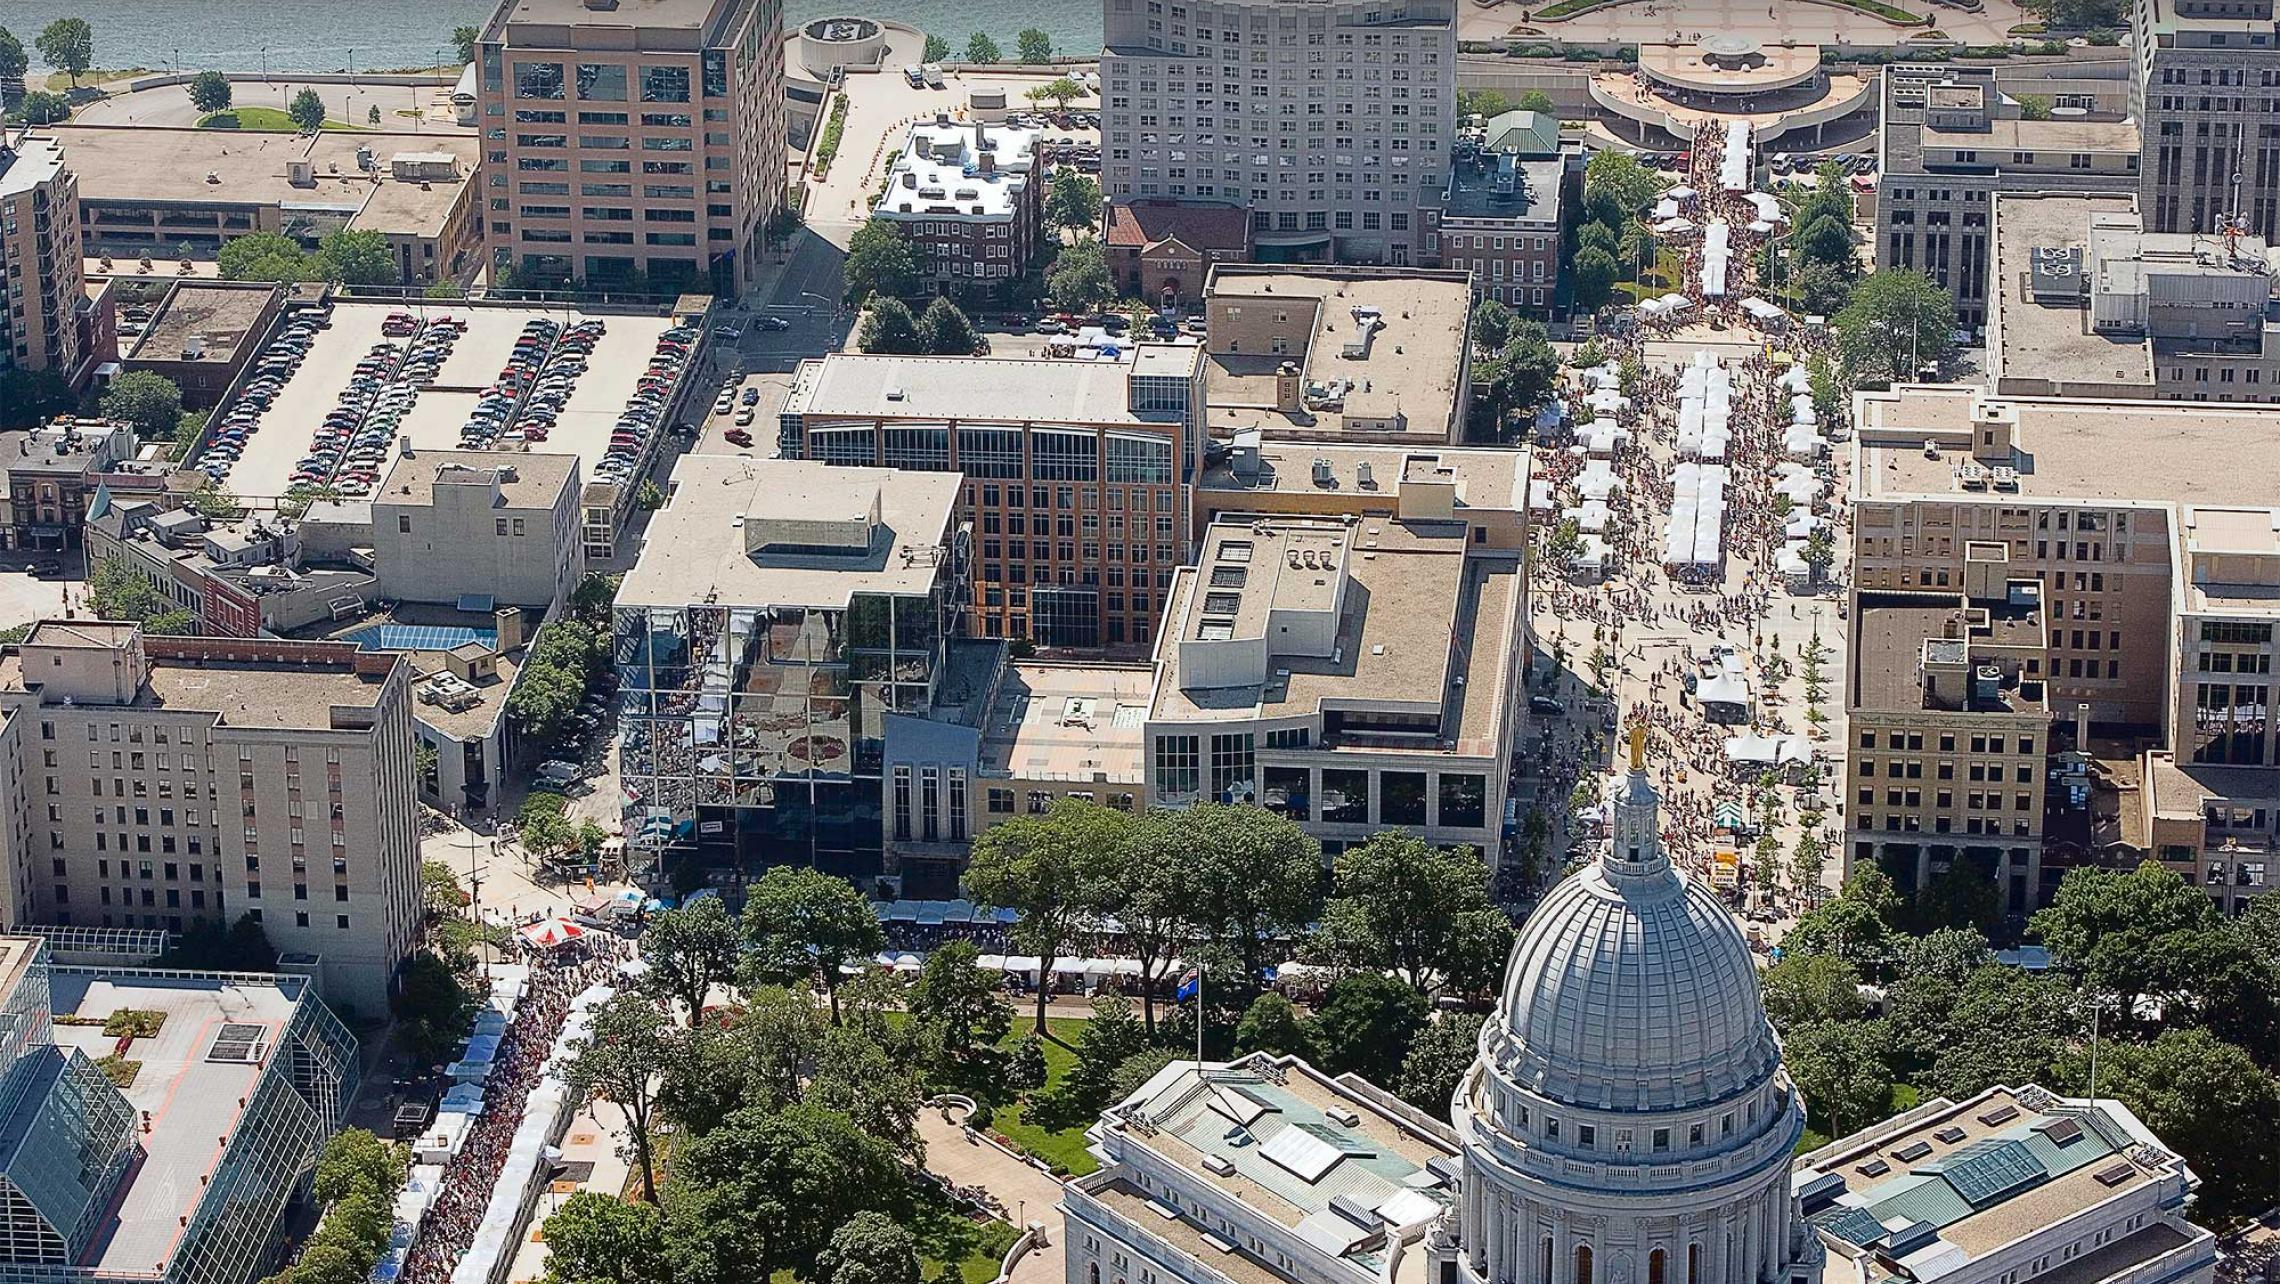 ULI Block 89 - Aerial Image, Art Fair on the Square